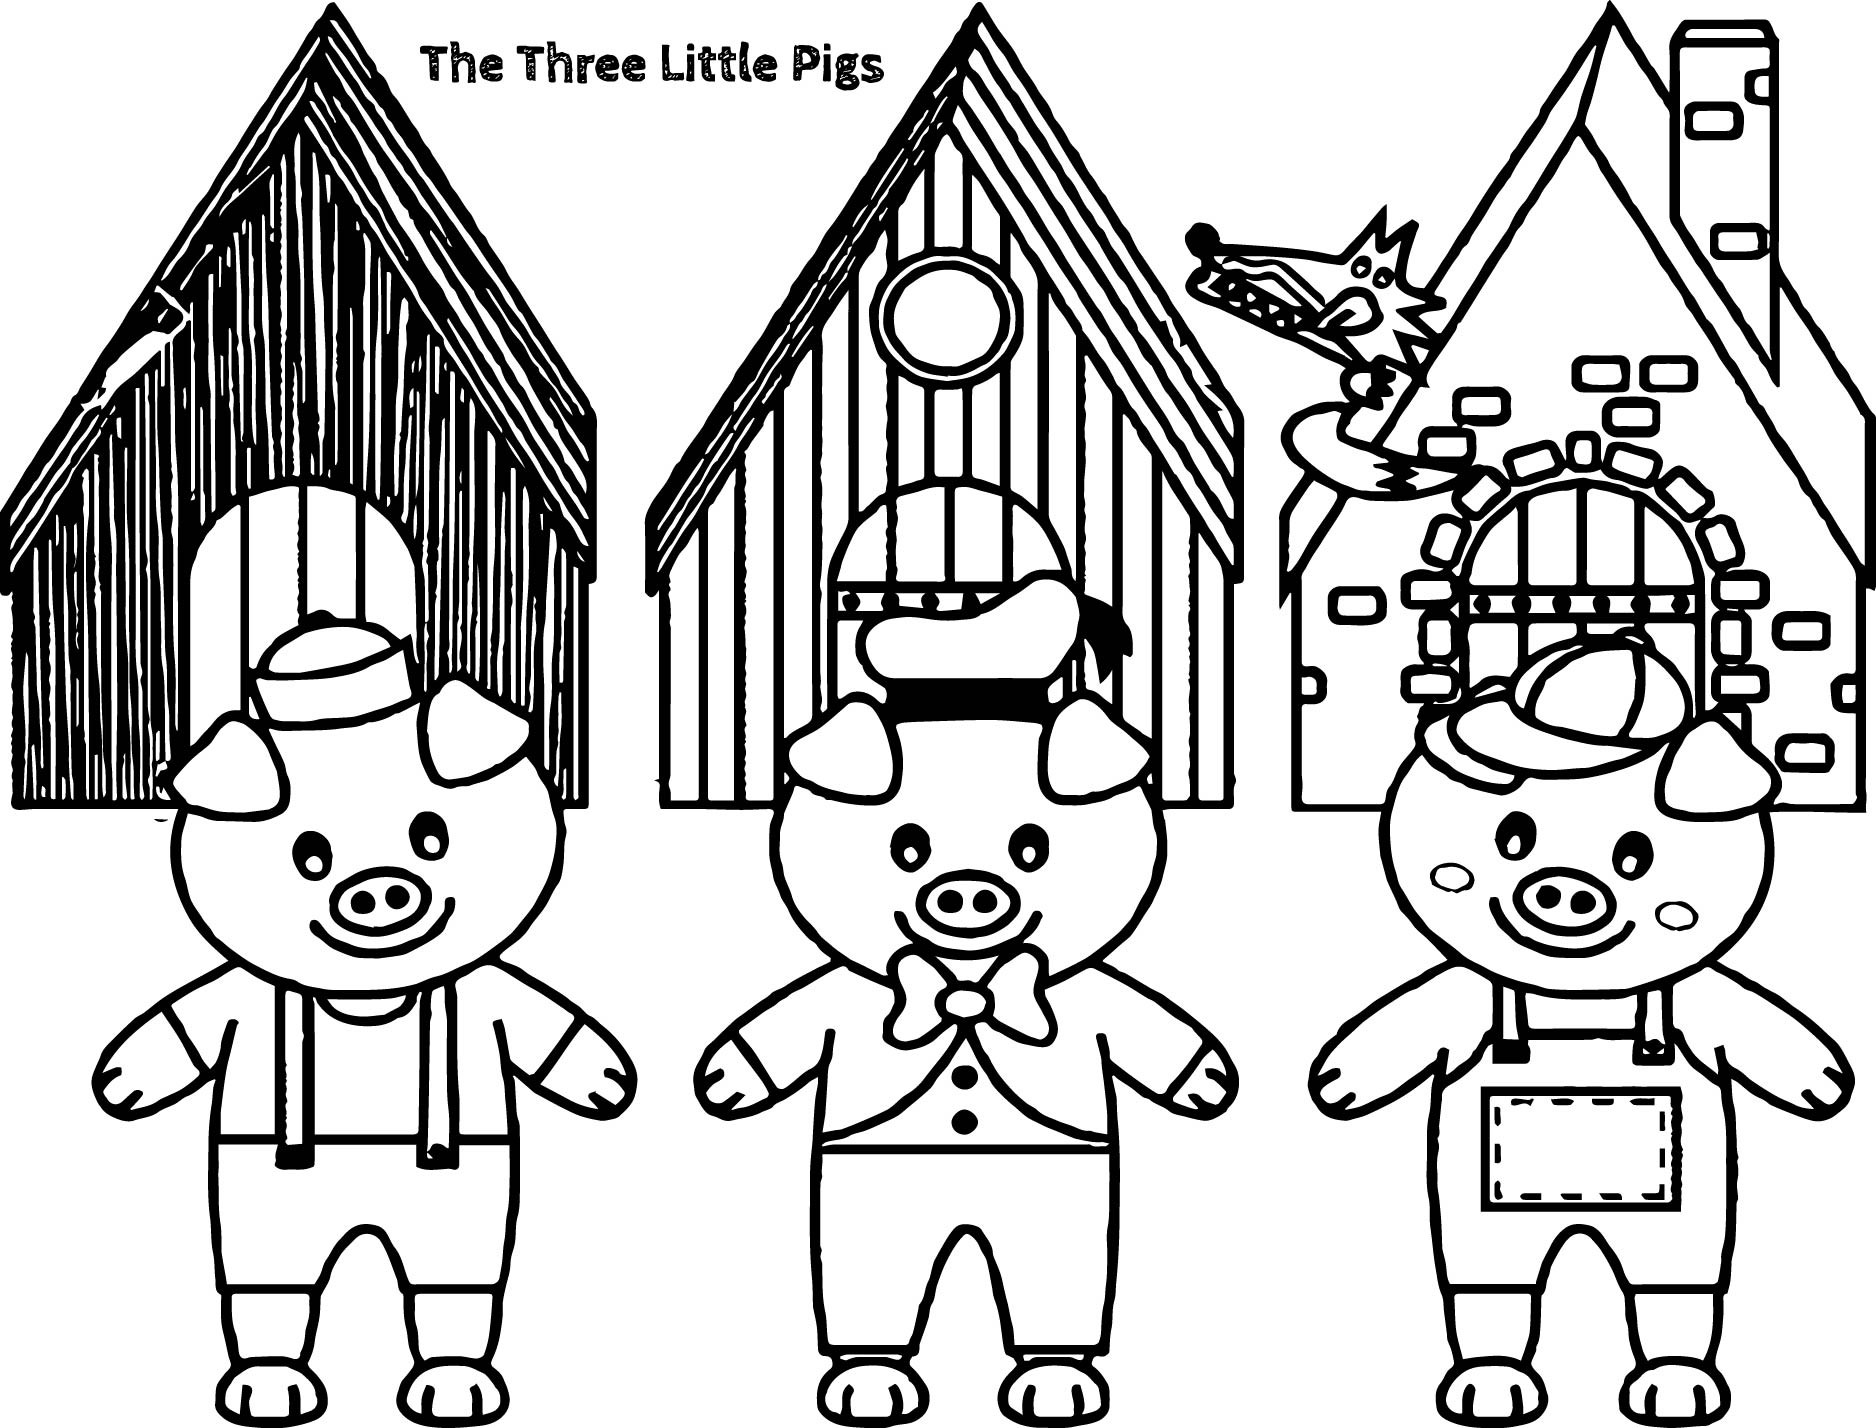 1876x1428 The Three Little Pigs Coloring Pages Free Draw To Color Inside Pig